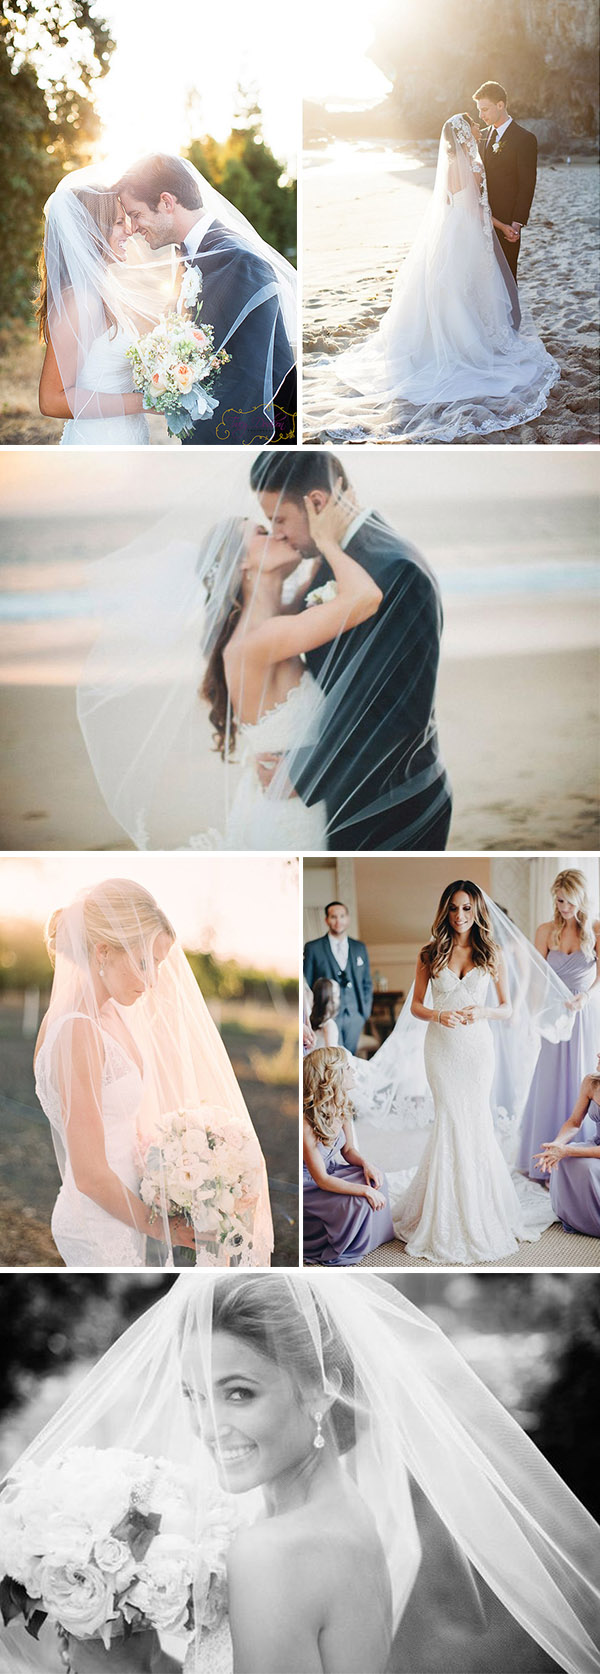 stunning wedding photo poses with bridal veils